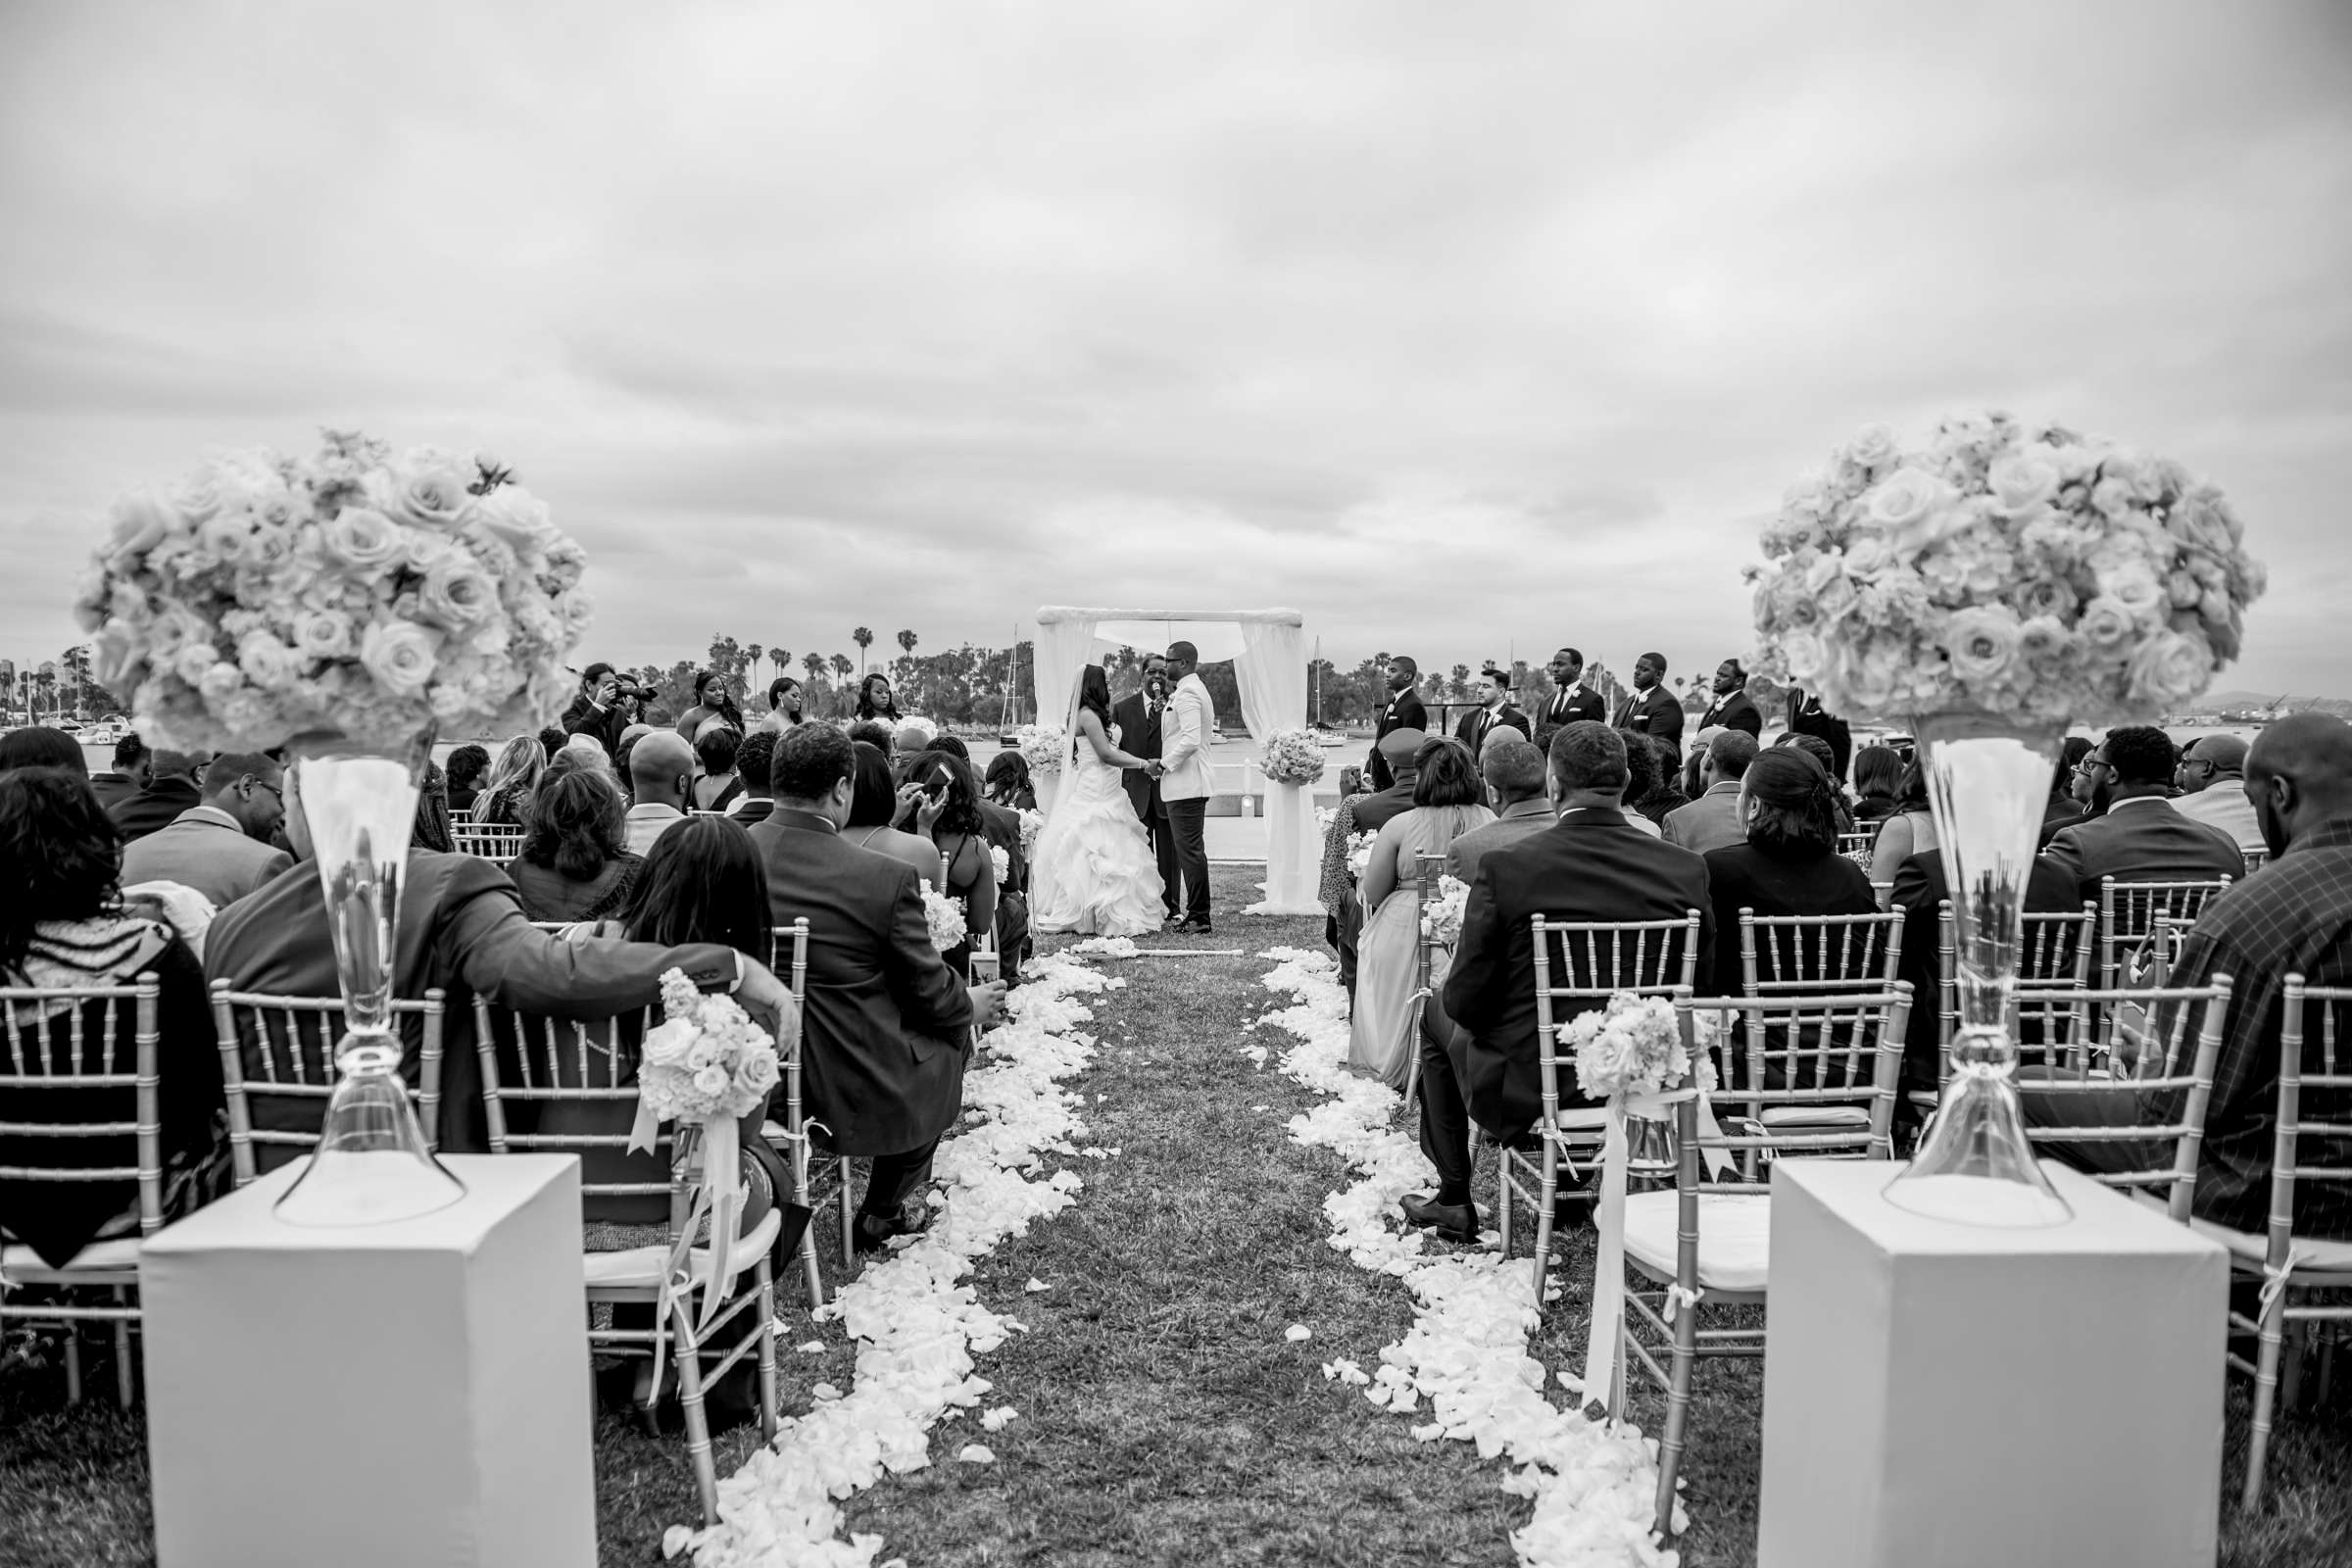 Coronado Community Center Wedding coordinated by First Comes Love Weddings & Events, Nikia and Charles Wedding Photo #51 by True Photography